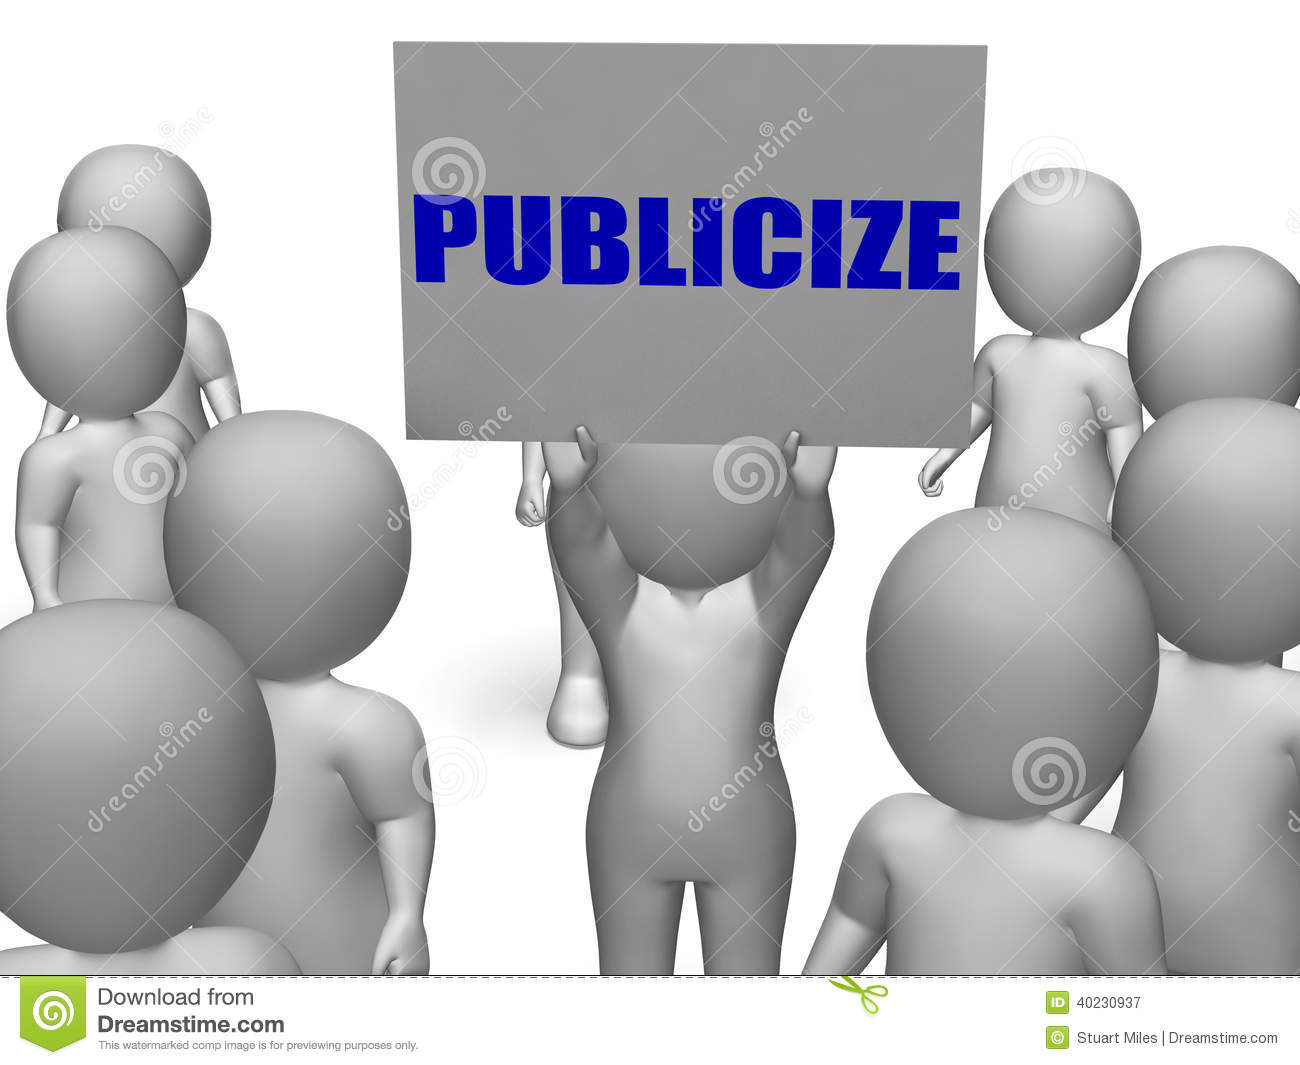 Publicize Board Character Means Commercial Stock Illustration.